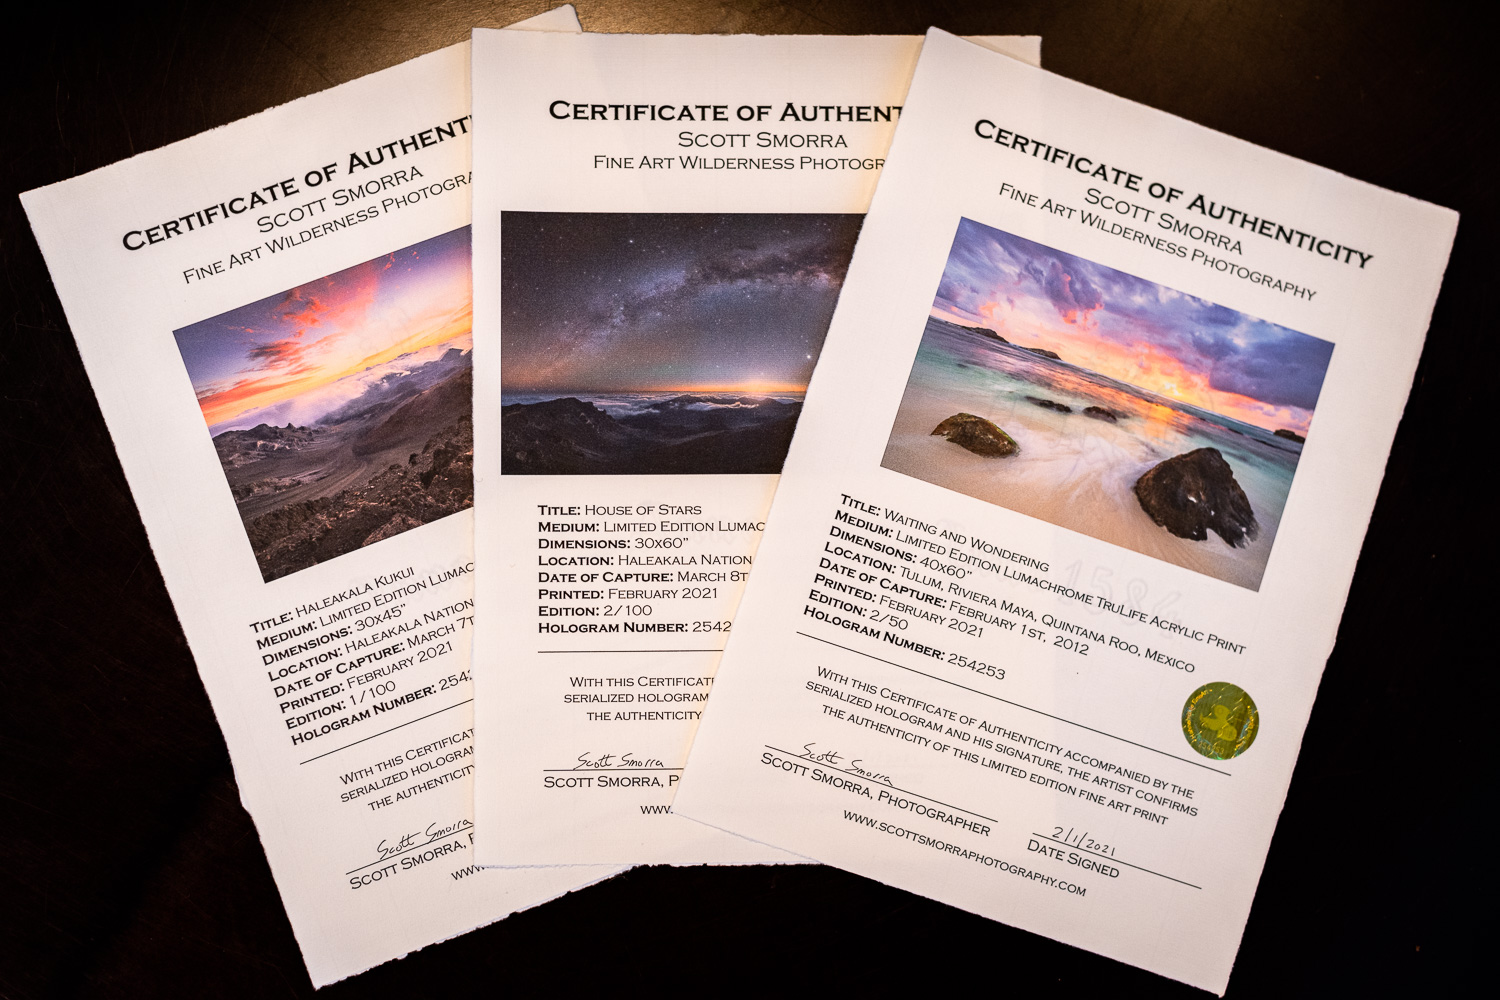 Certificates of Authenticity for Fine Art Photography. Examples from Scott Smorra Photography.